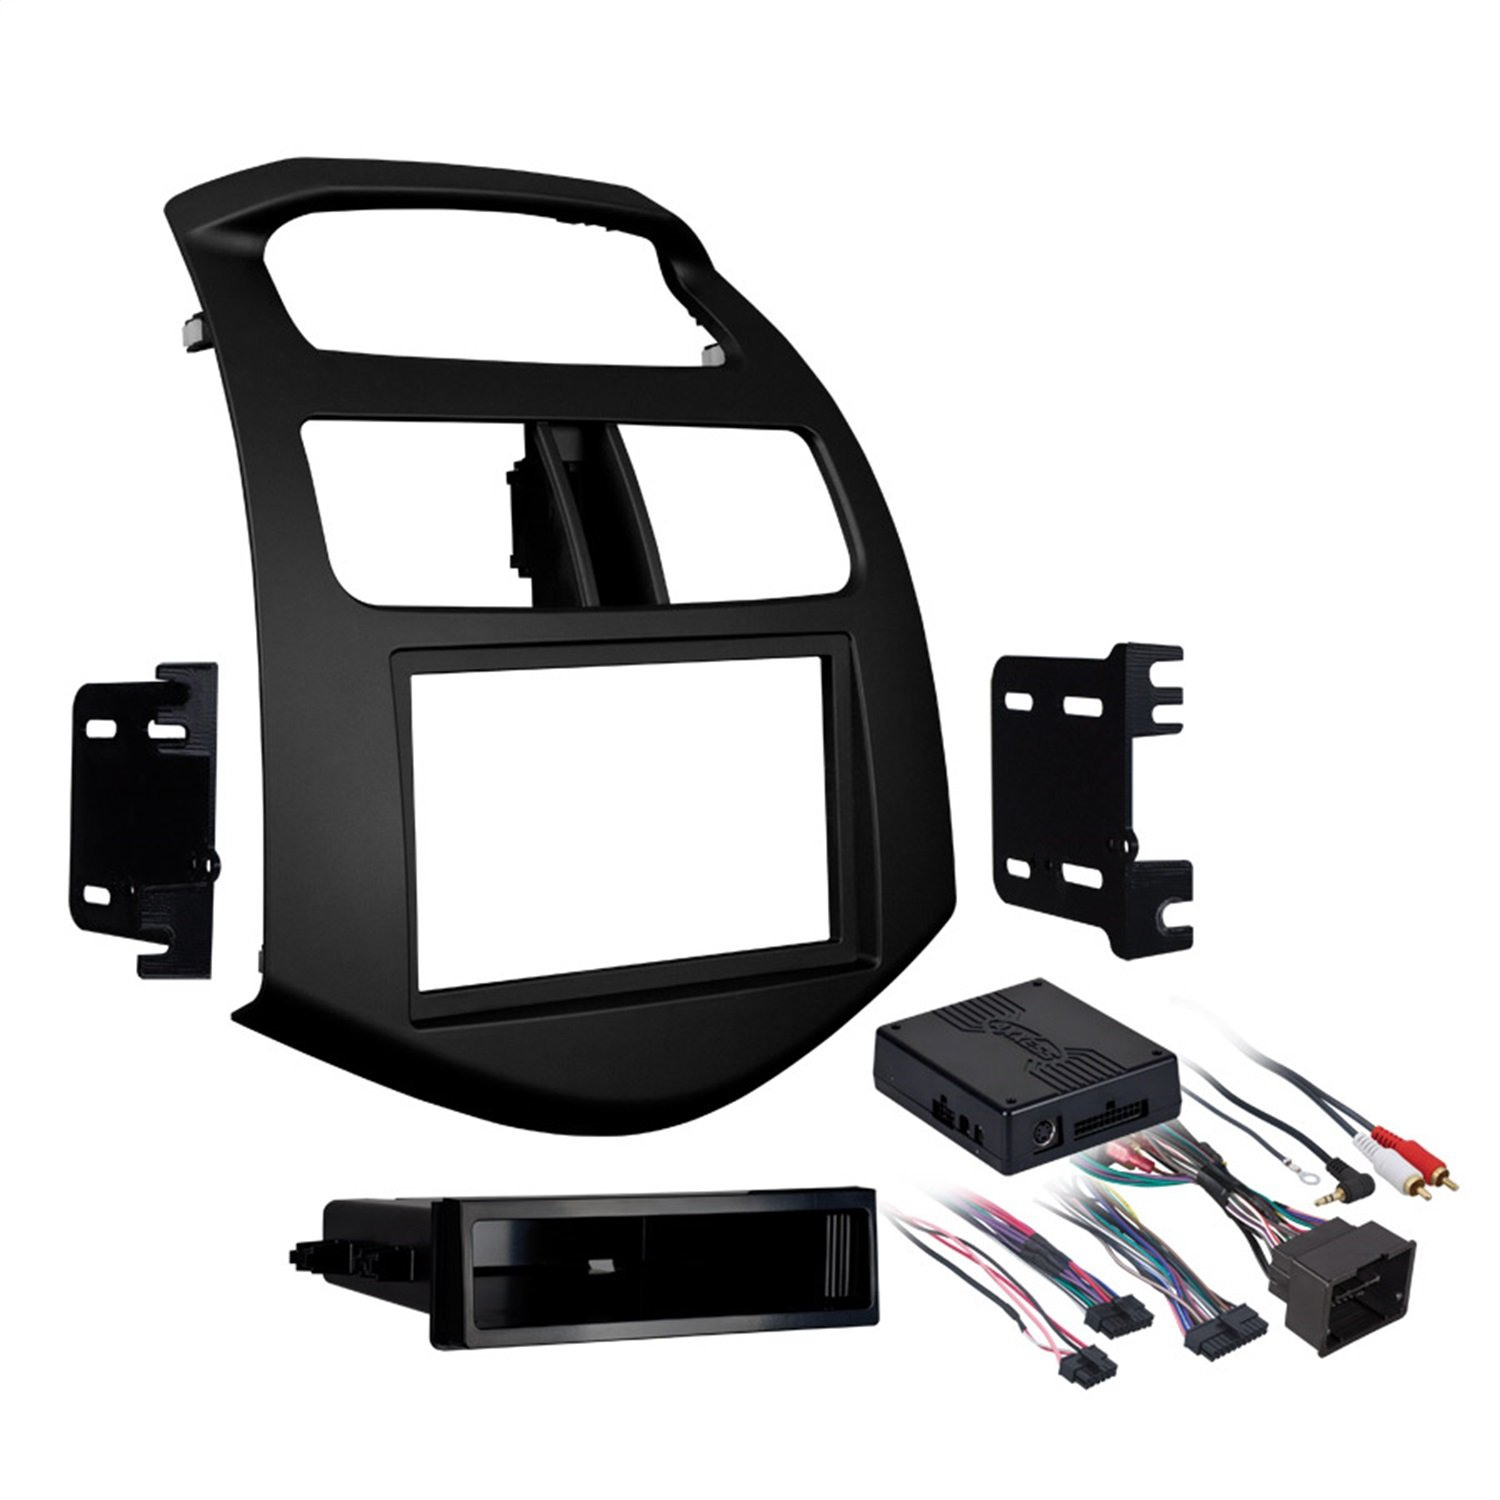 Metra 99-3309B Single/Double DIN Stereo Installation Dash Kit for 2013- 2015 Chevy Spark (Black)